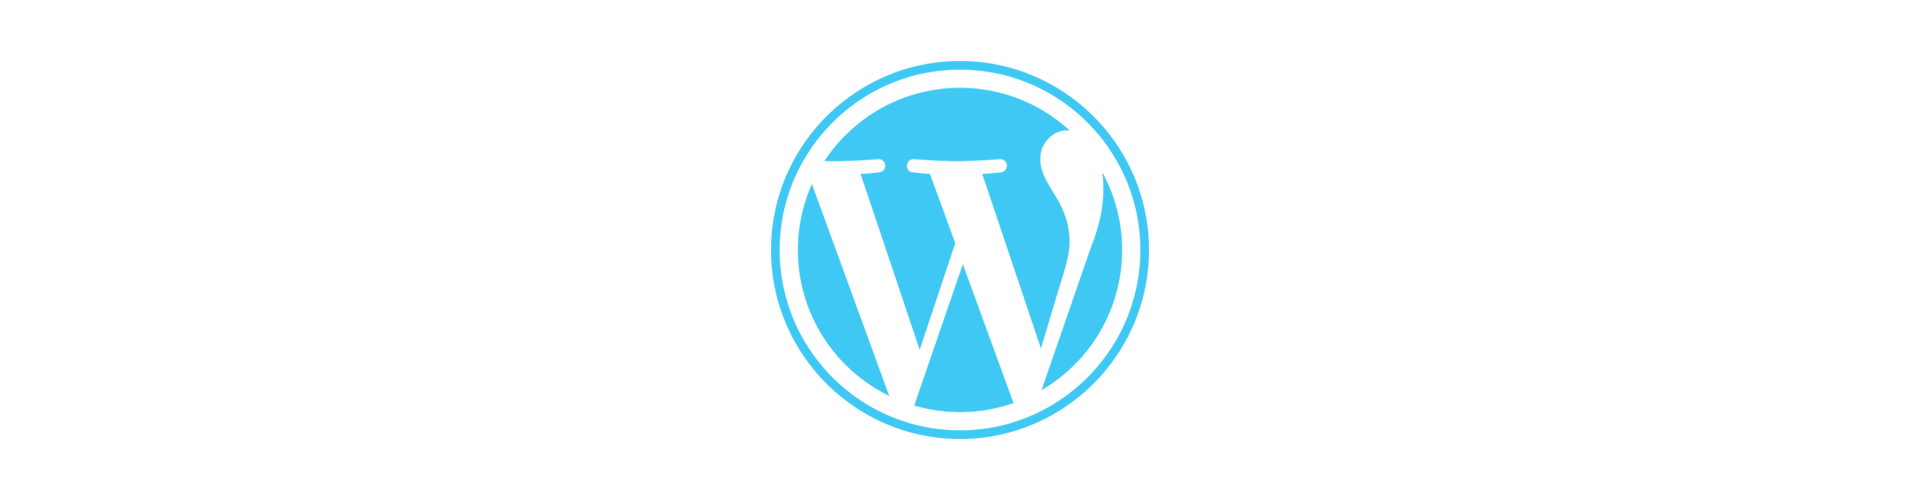 sito web wordpress wireup